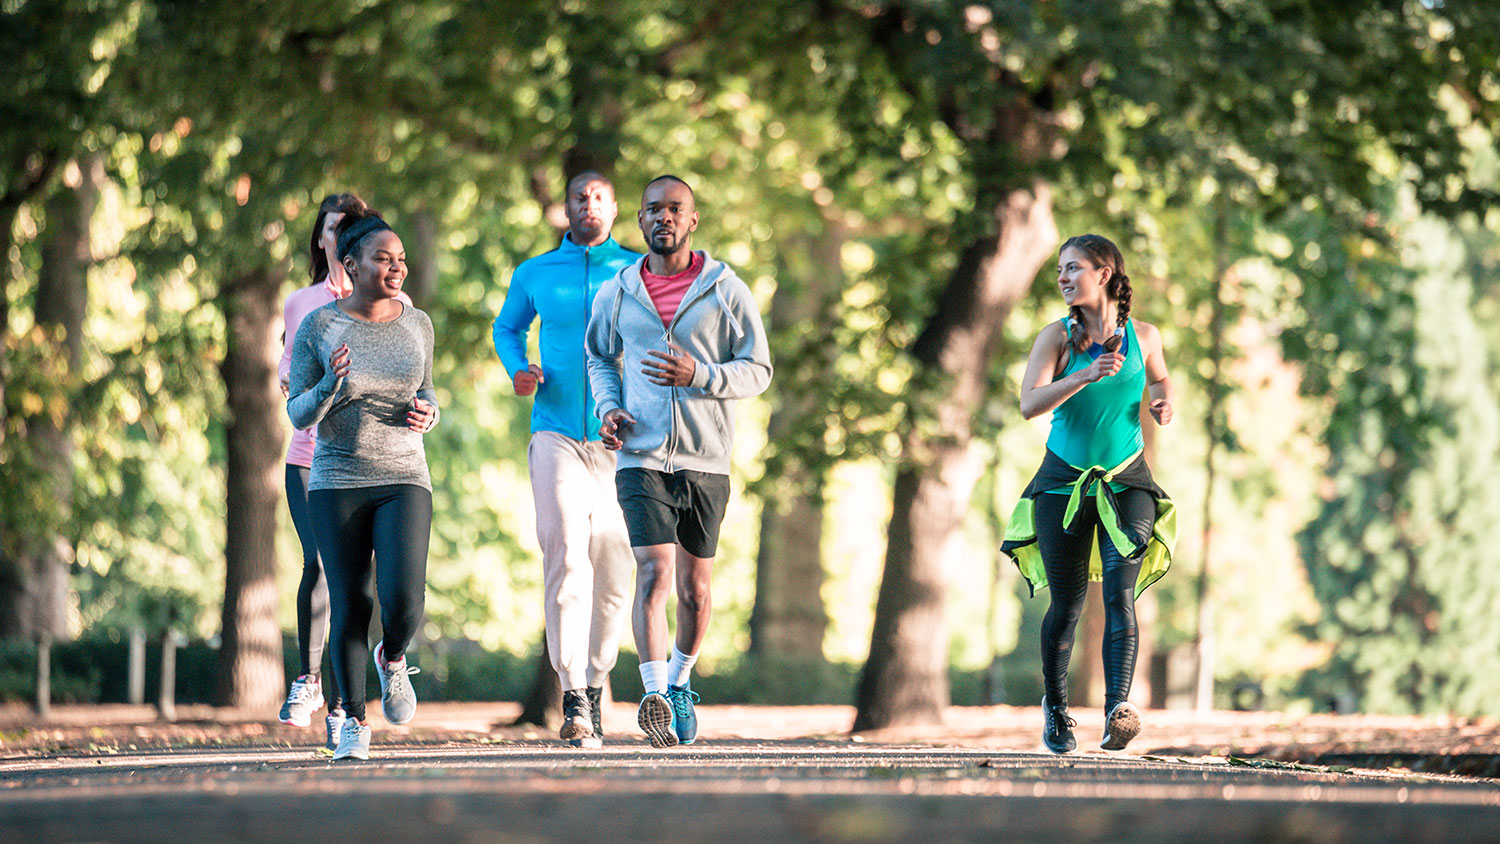 Runners in a park - Parks Recreation and Tourism Management NC State University